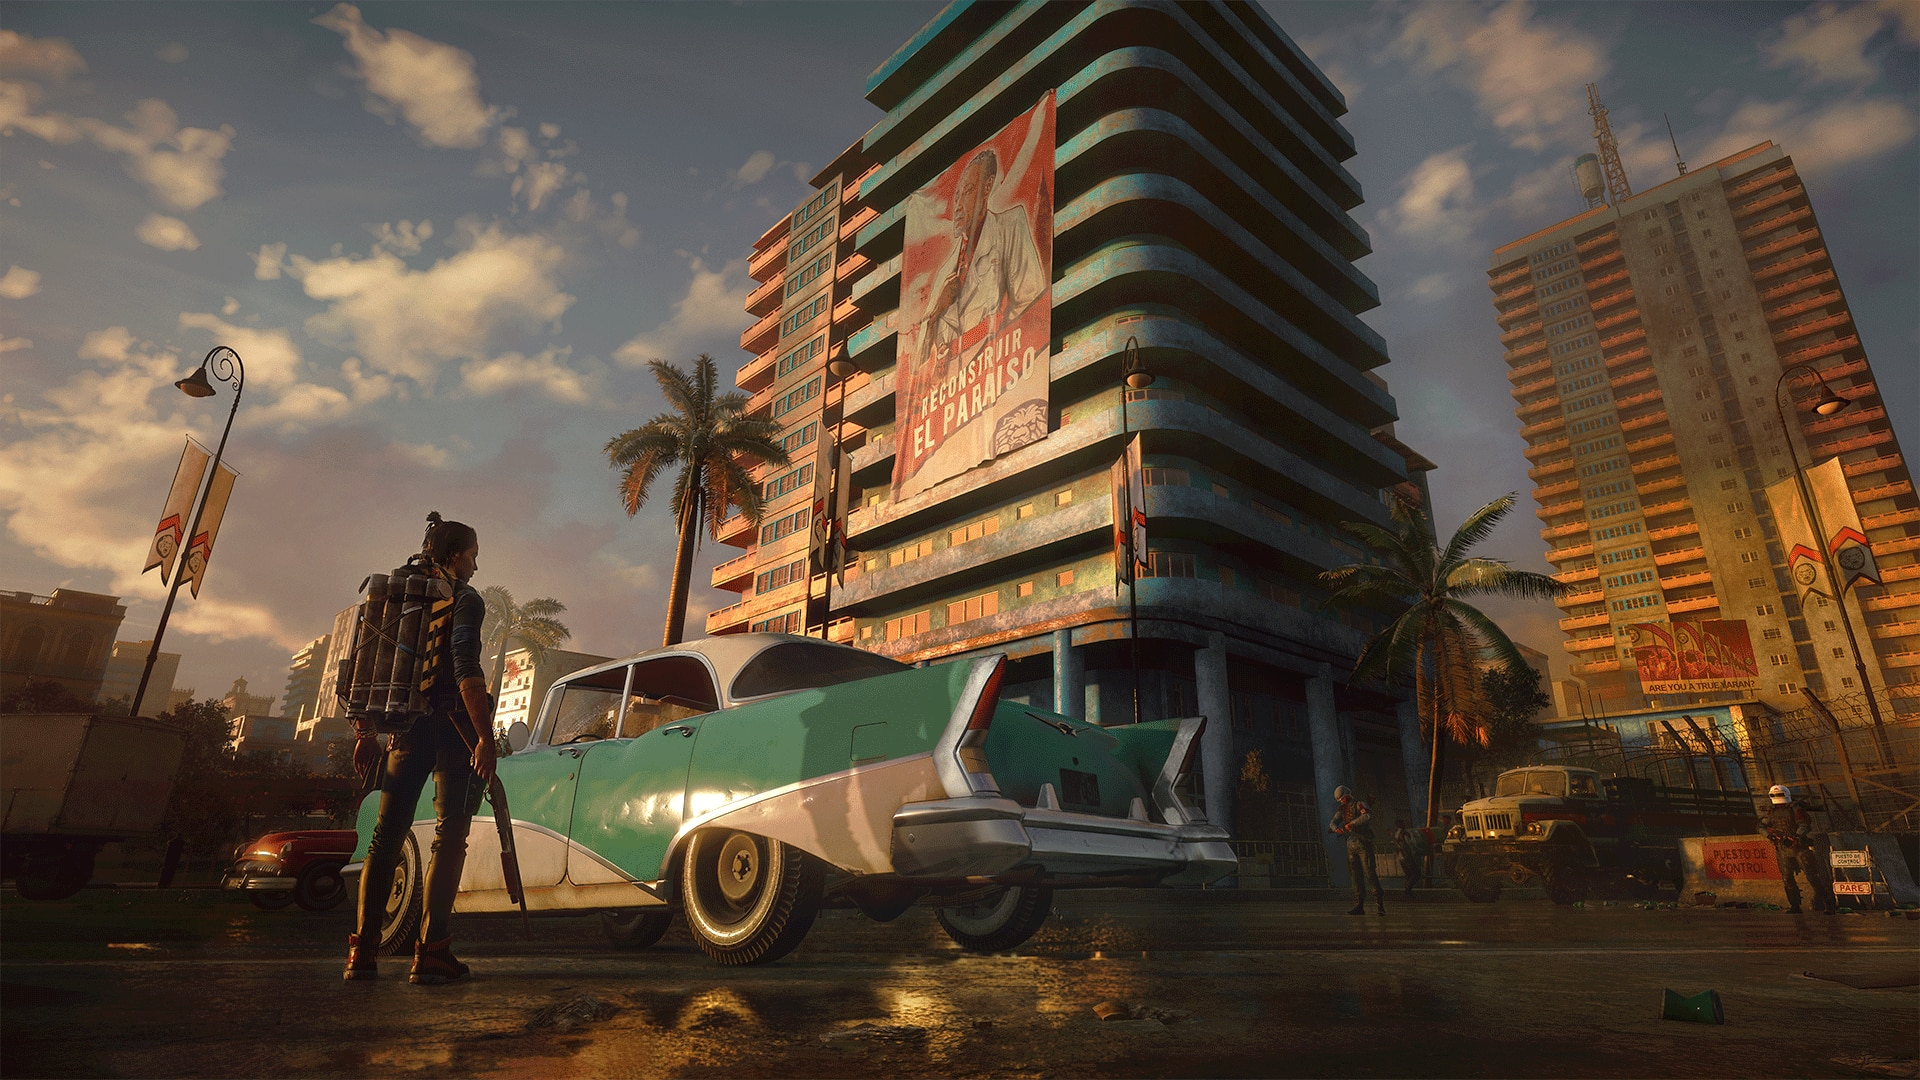 Esperanza, die Hauptstadt von Yara | Bildquelle: https://news.ubisoft.com/en-us/article/13Ub9wz4Y67LYjox2oytzO/far-cry-6-narrative-director-on-tropical-setting-and-creating-a-new-villain © Ubisoft | Bilder sind in der Regel urheberrechtlich geschützt